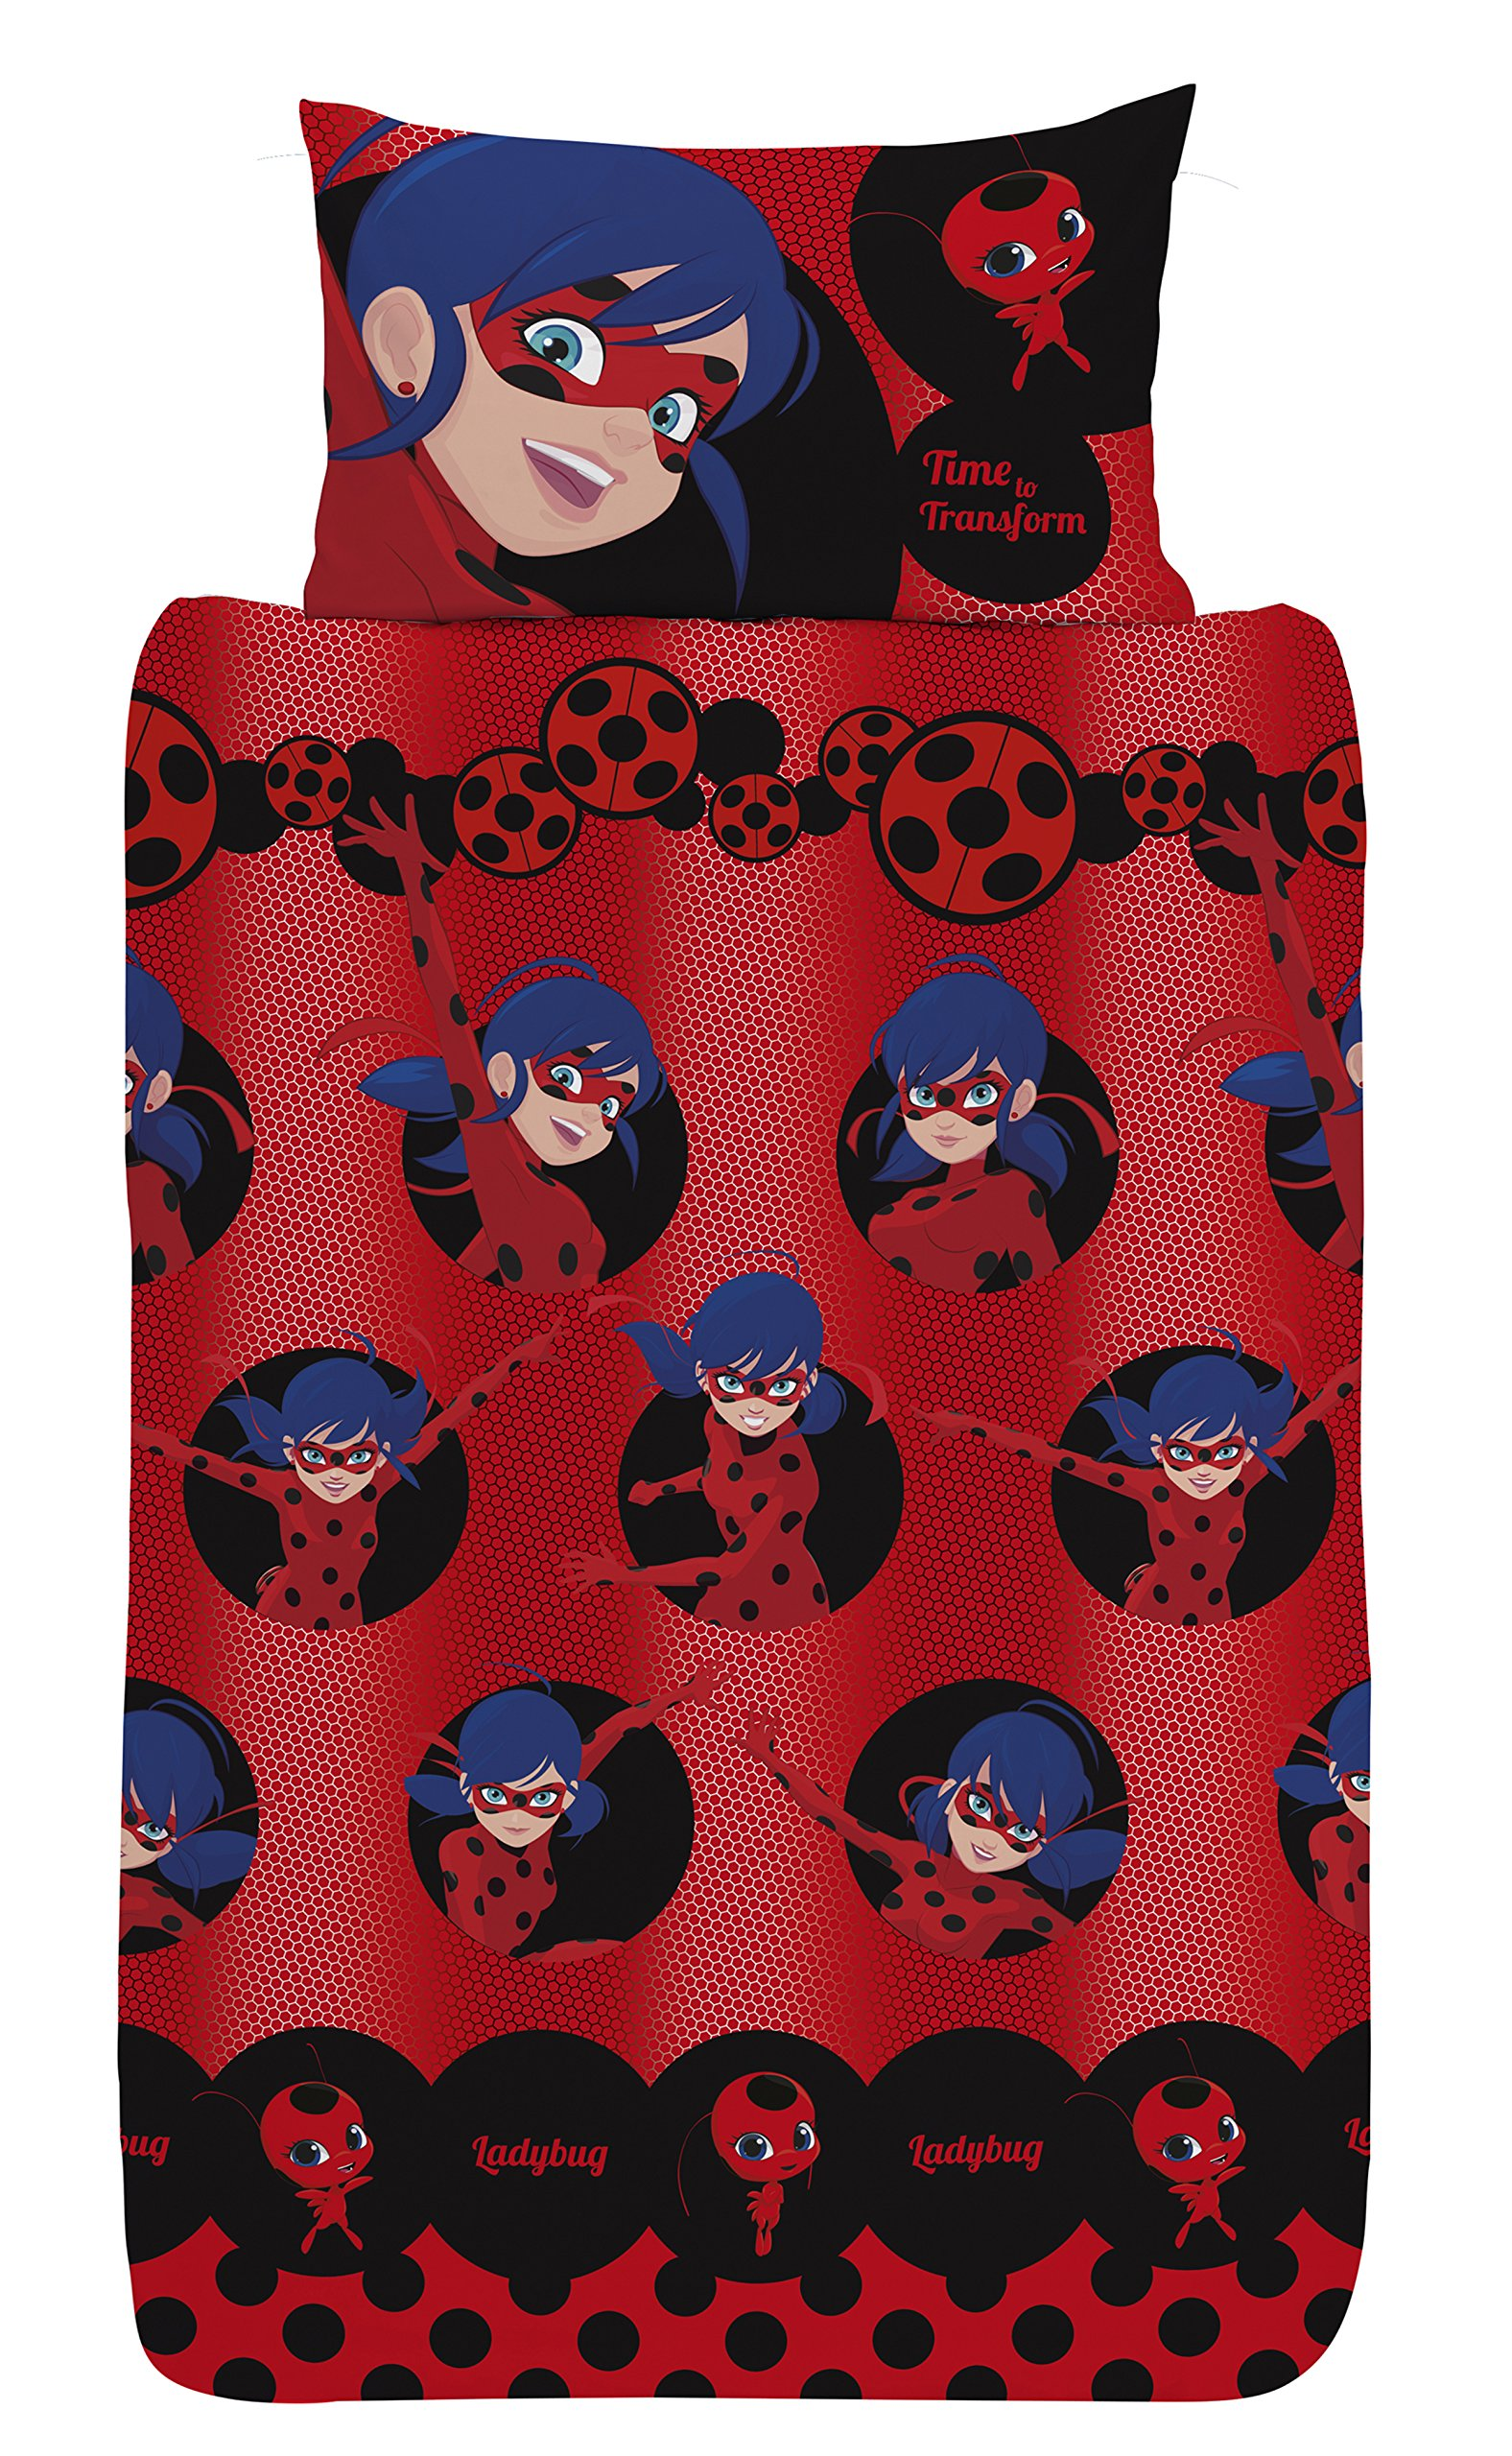 Miraculous Lady Bug Girl Single Red Duvet Cover Set + Pillowcase